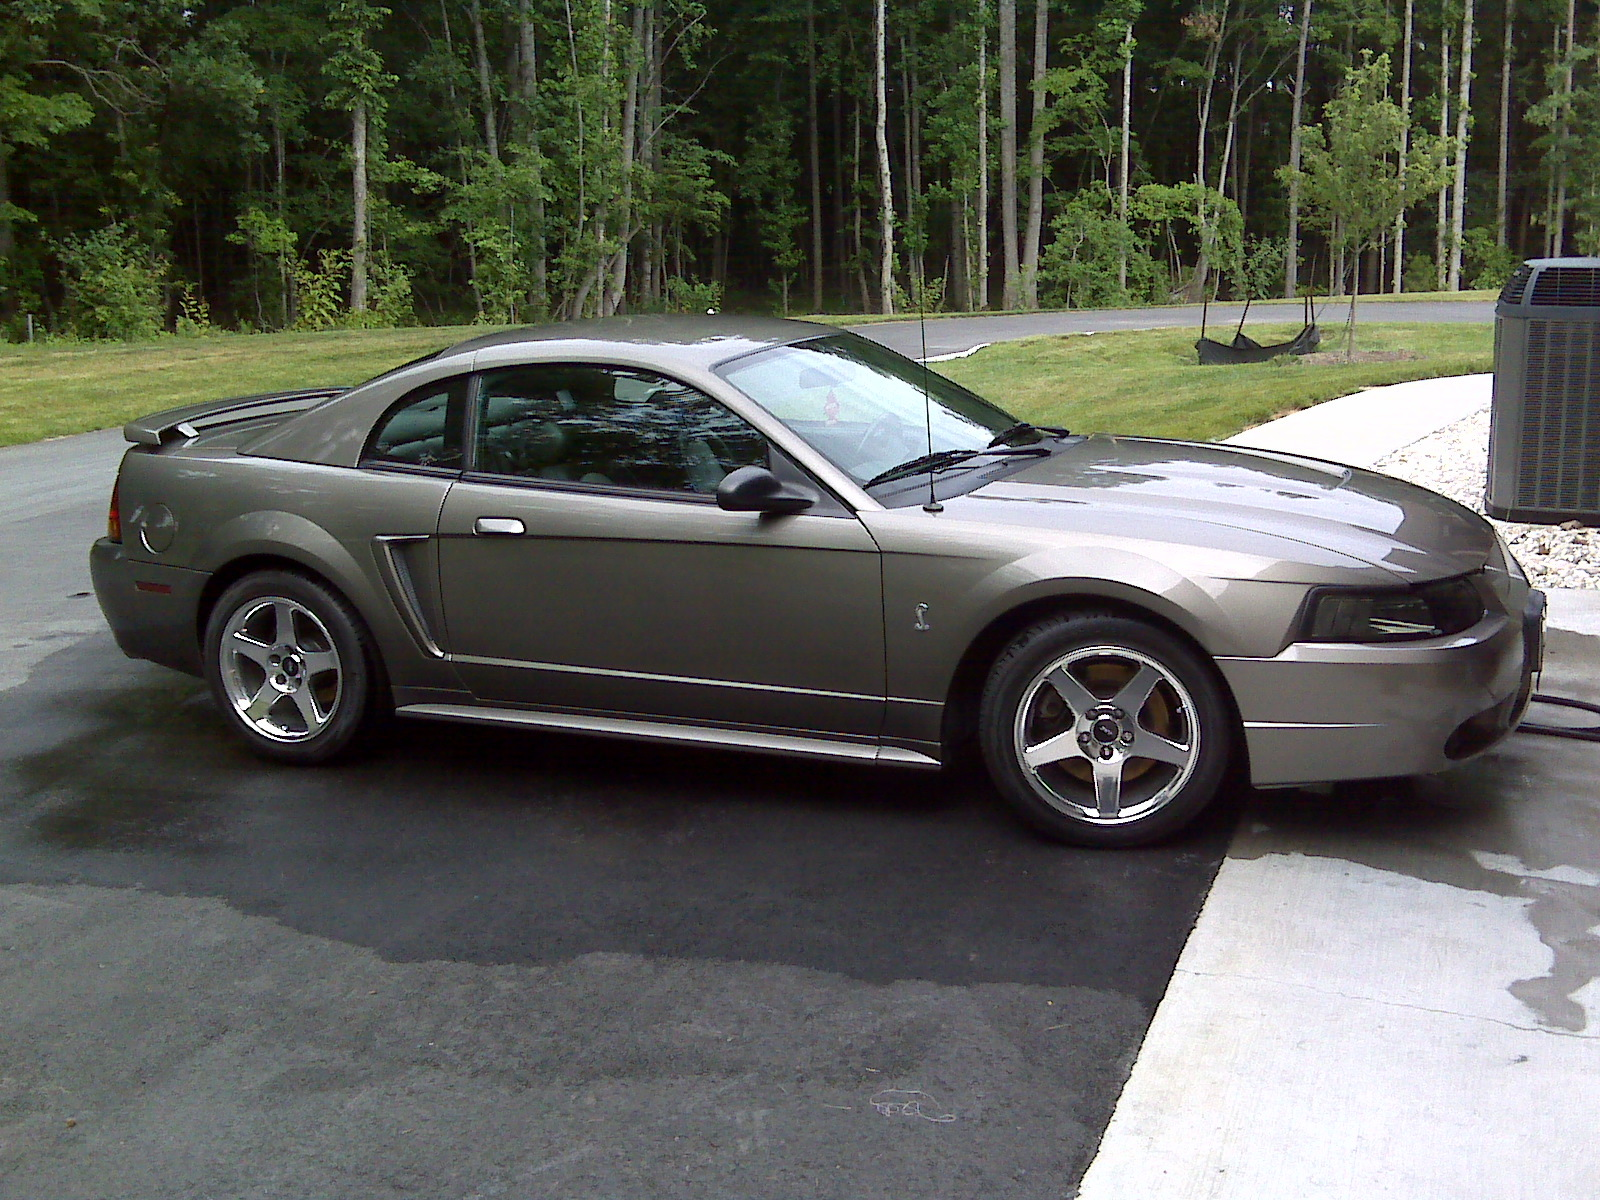 01mineralgrey 2001 Ford Mustang